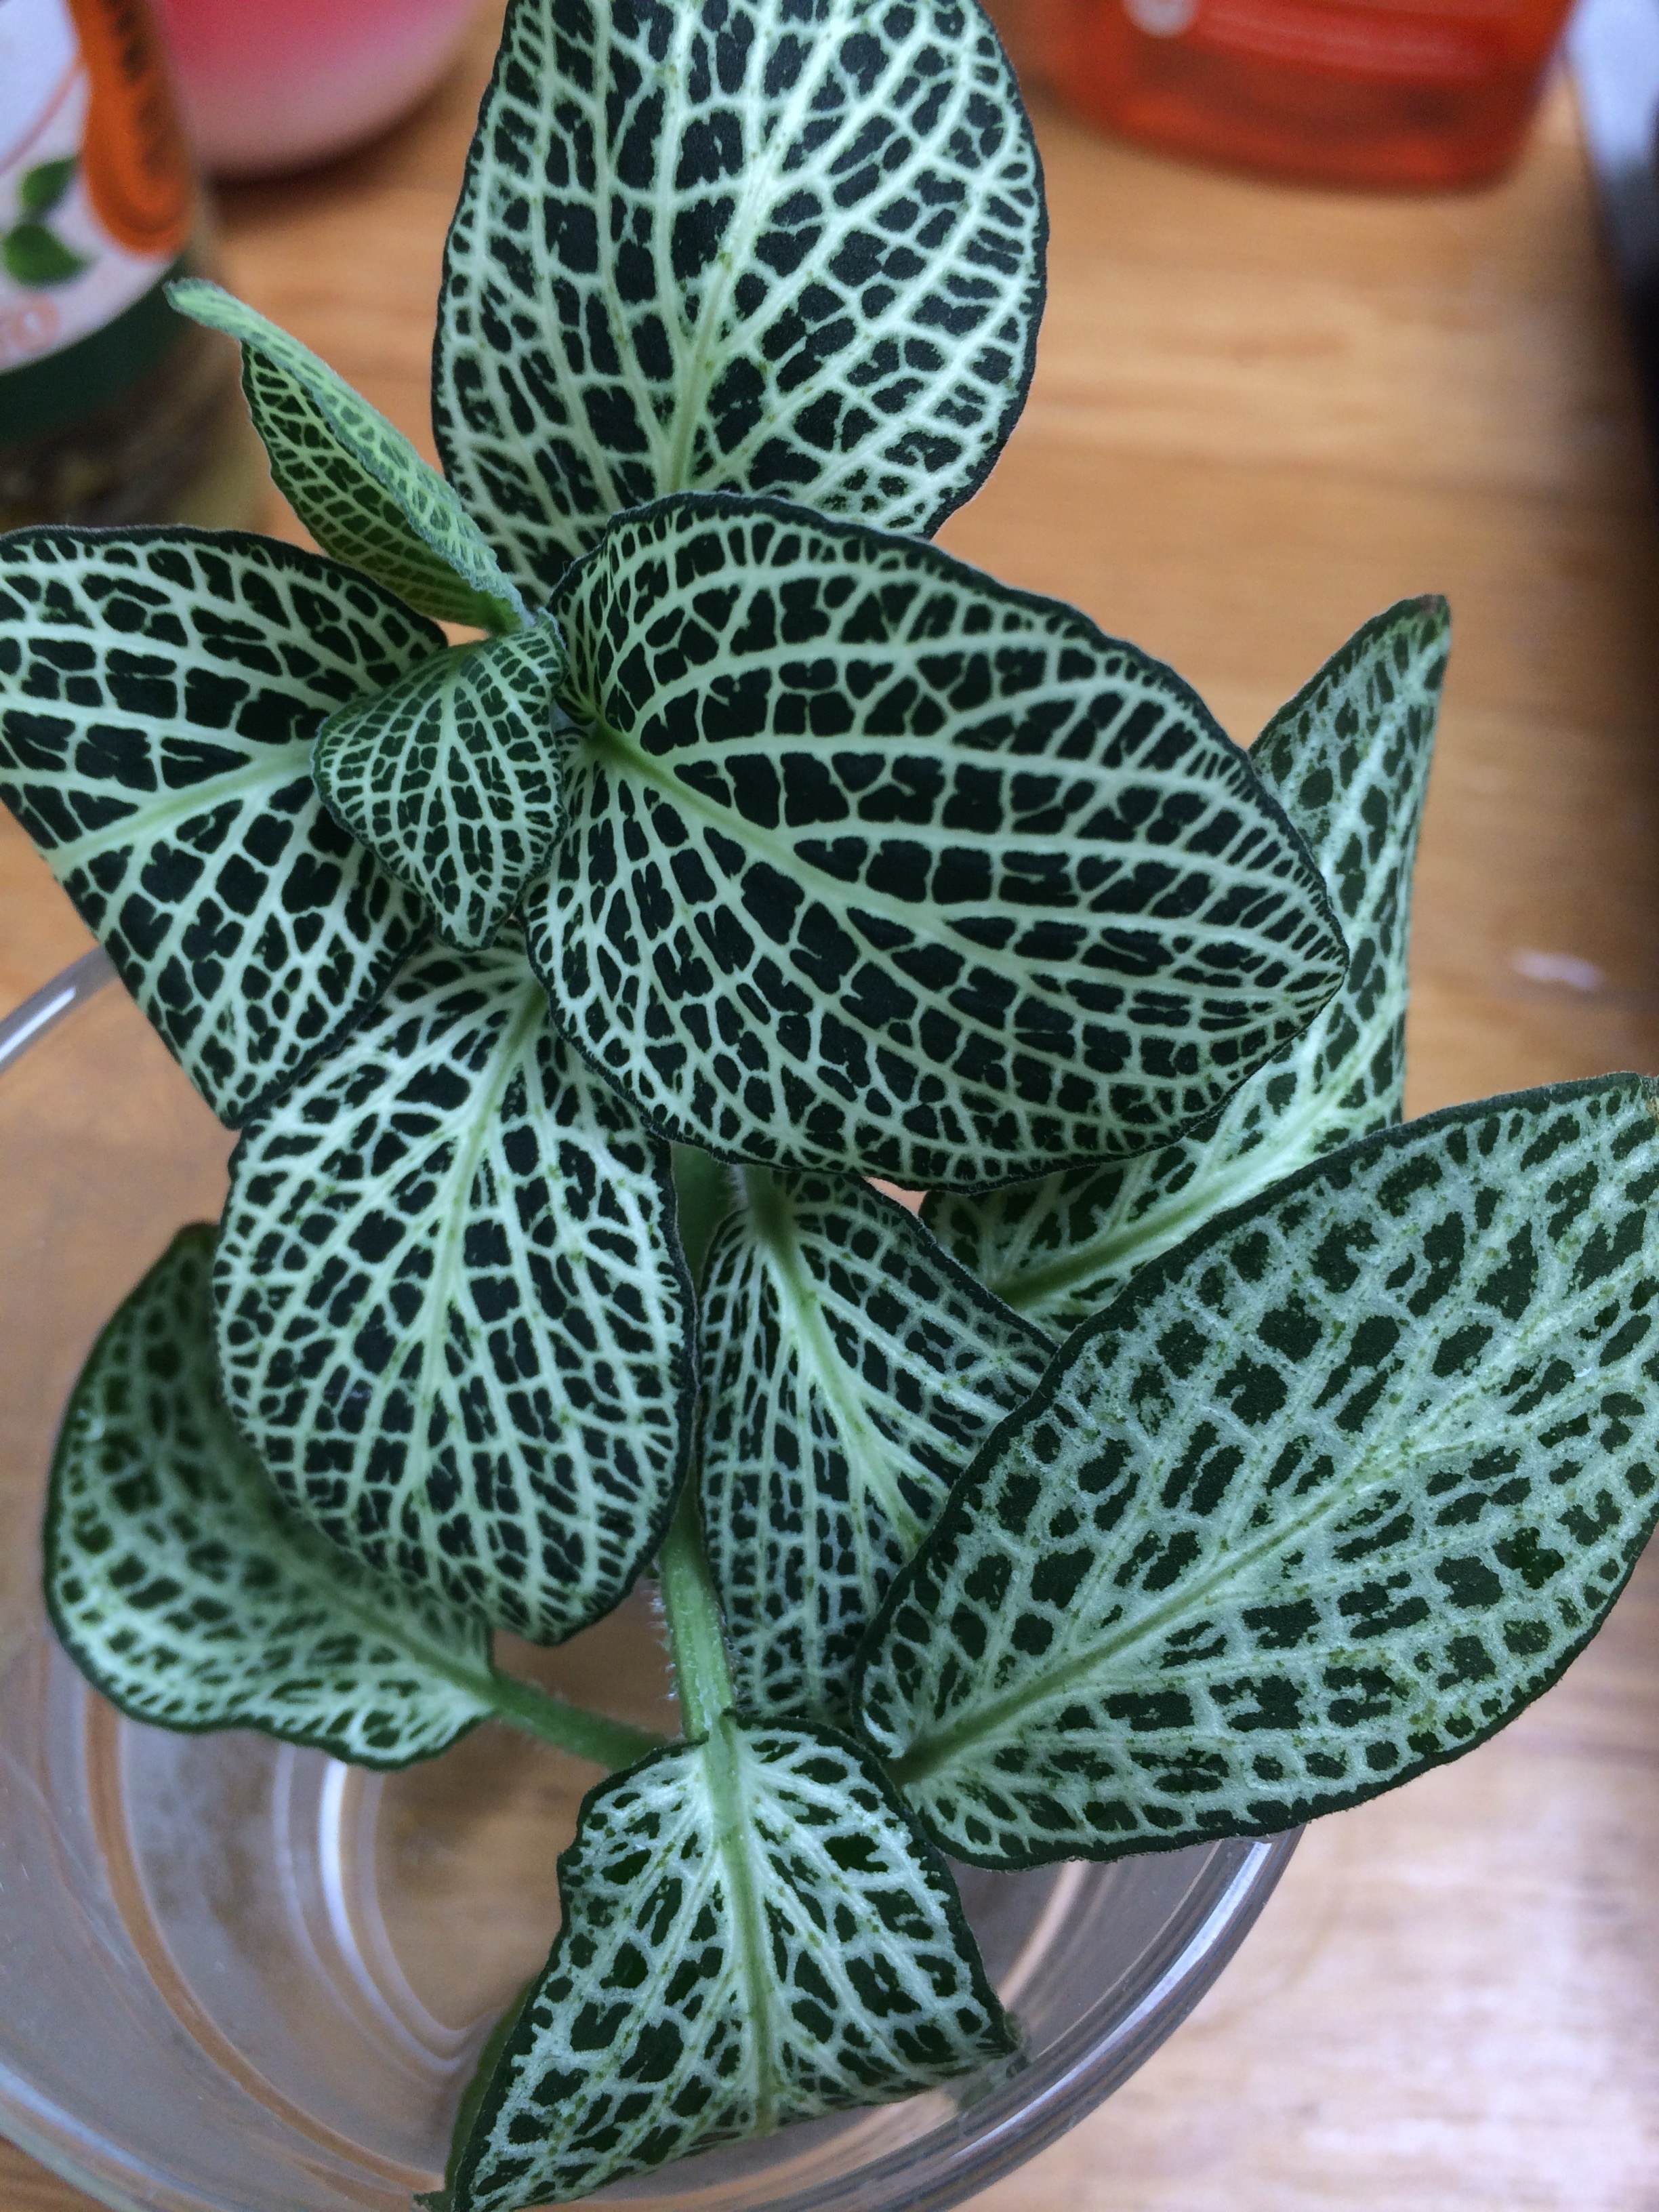 Unusual House Plants For Sale Where To Buy Houseplants In The Us Jane Perrone